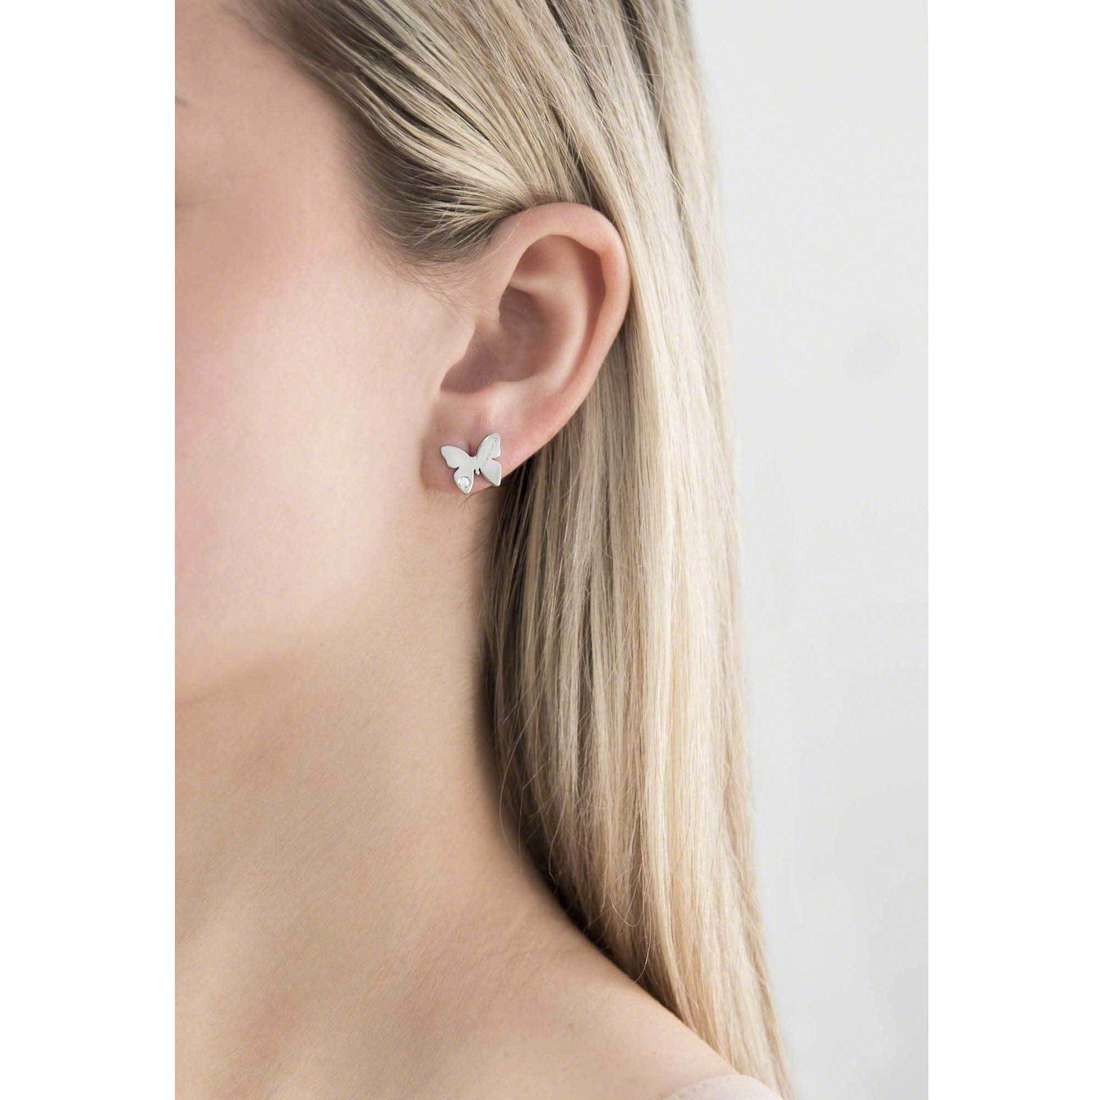 Nomination boucles d'oreille Butterfly femme 021308/001 indosso